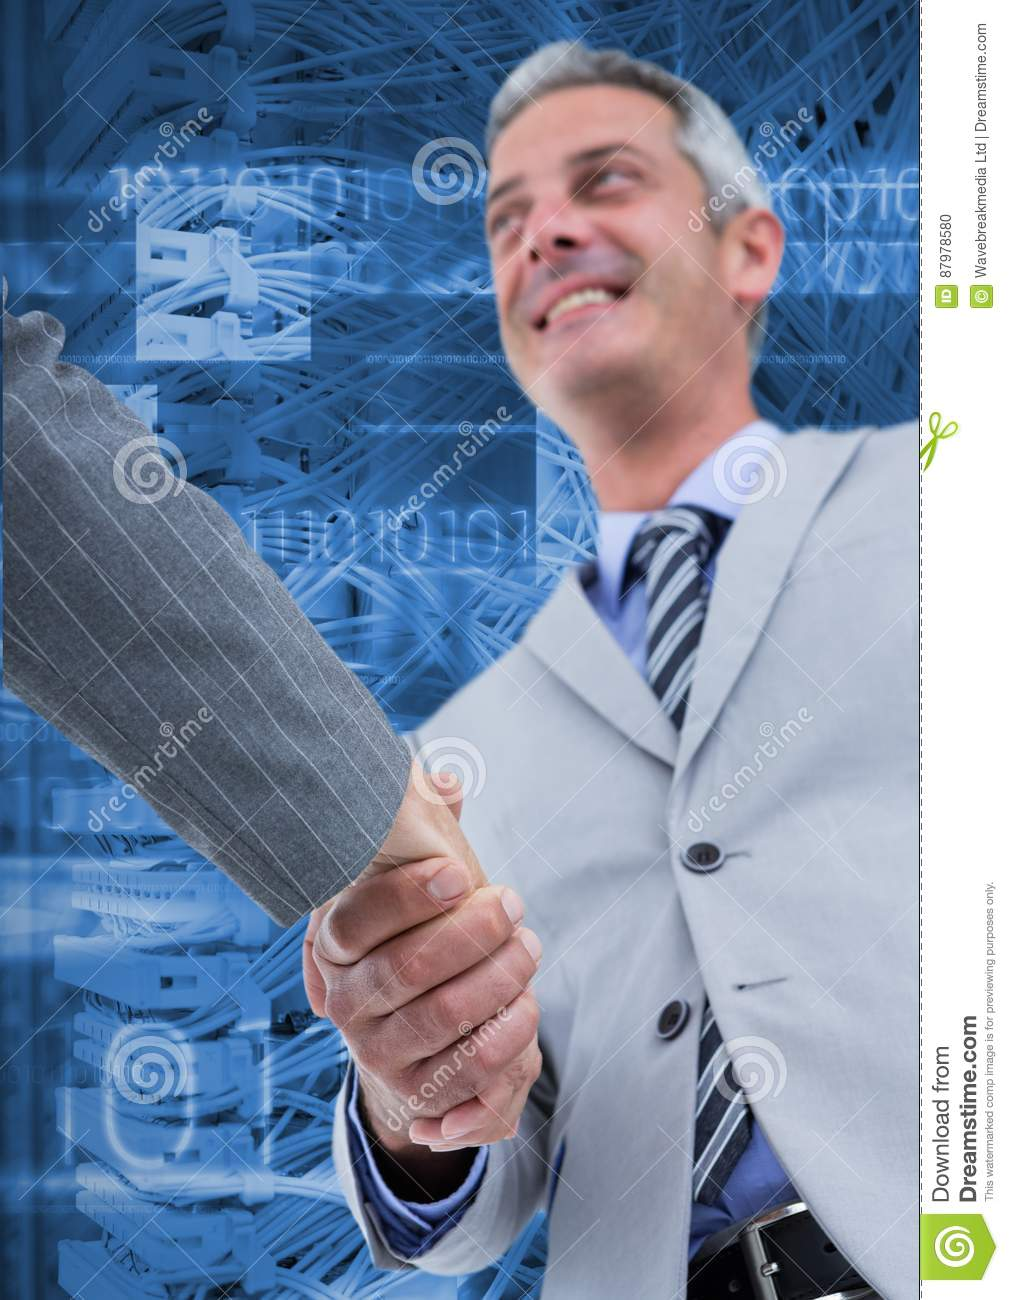 Business executives shaking hands against server systems in background